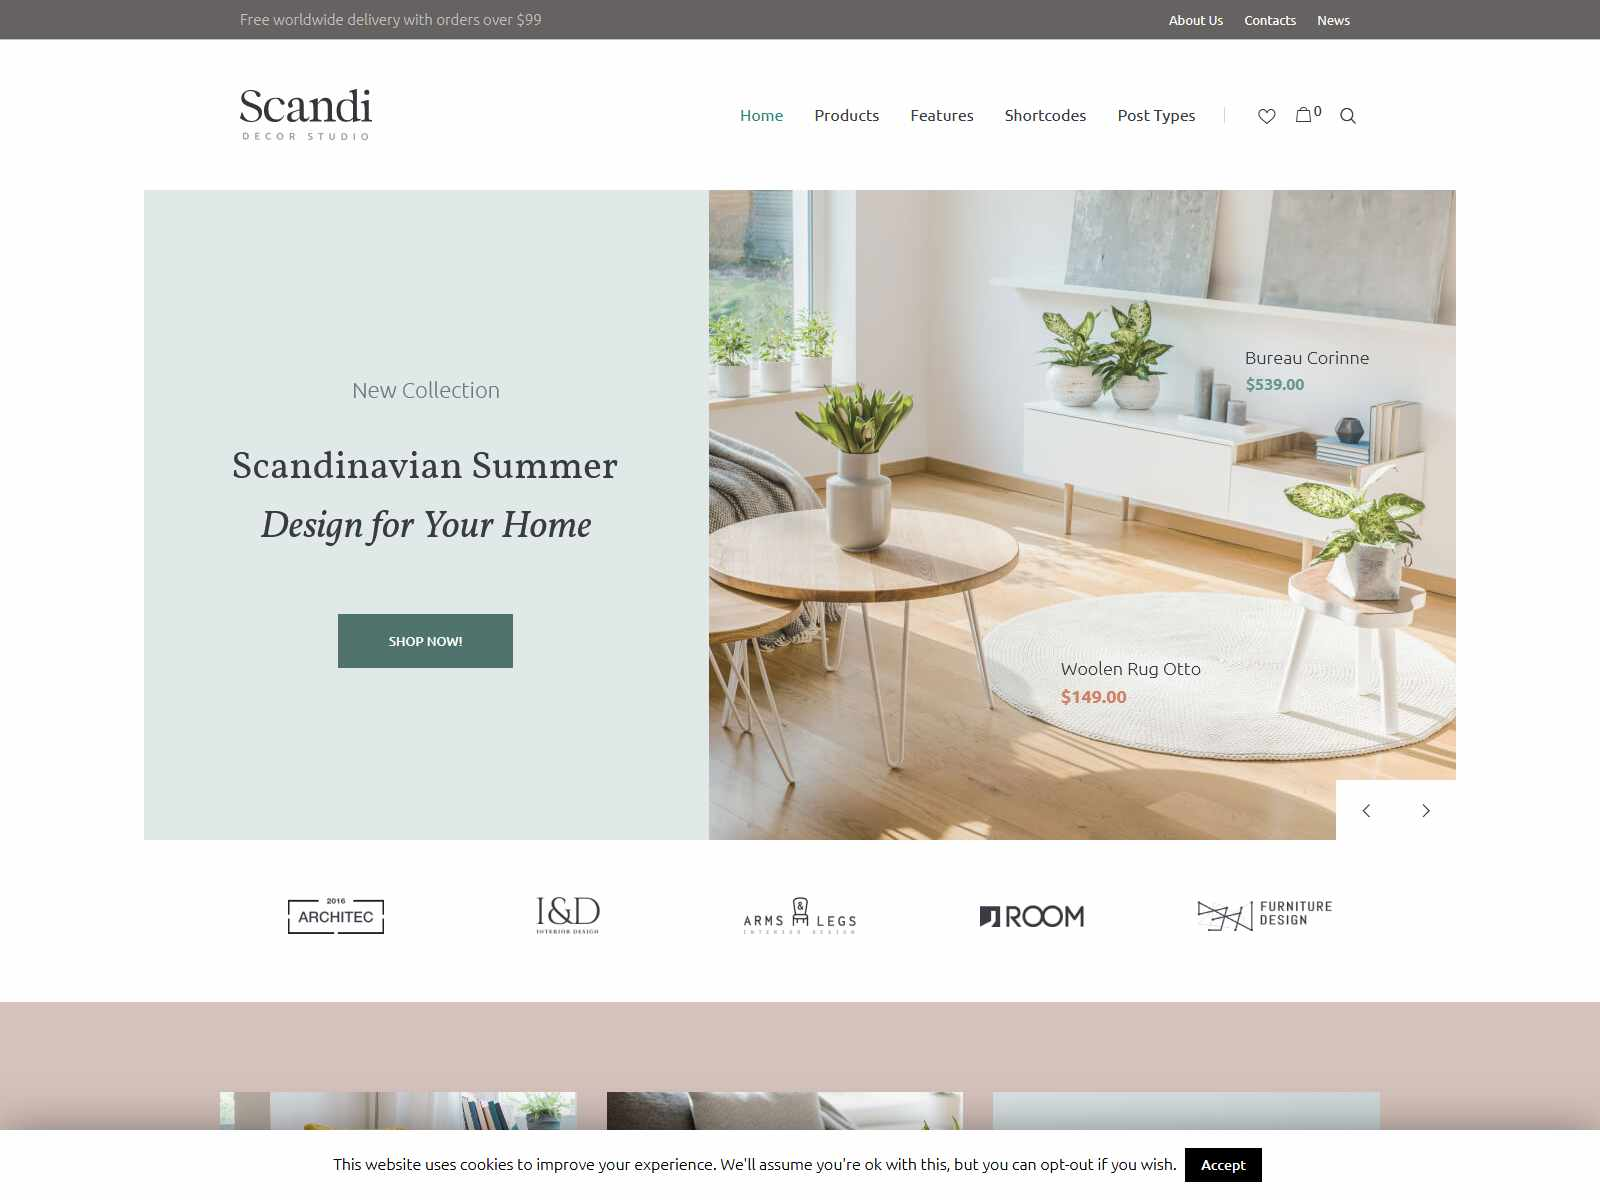 Scandi - Decor & Furniture Shop WooCommerce Theme